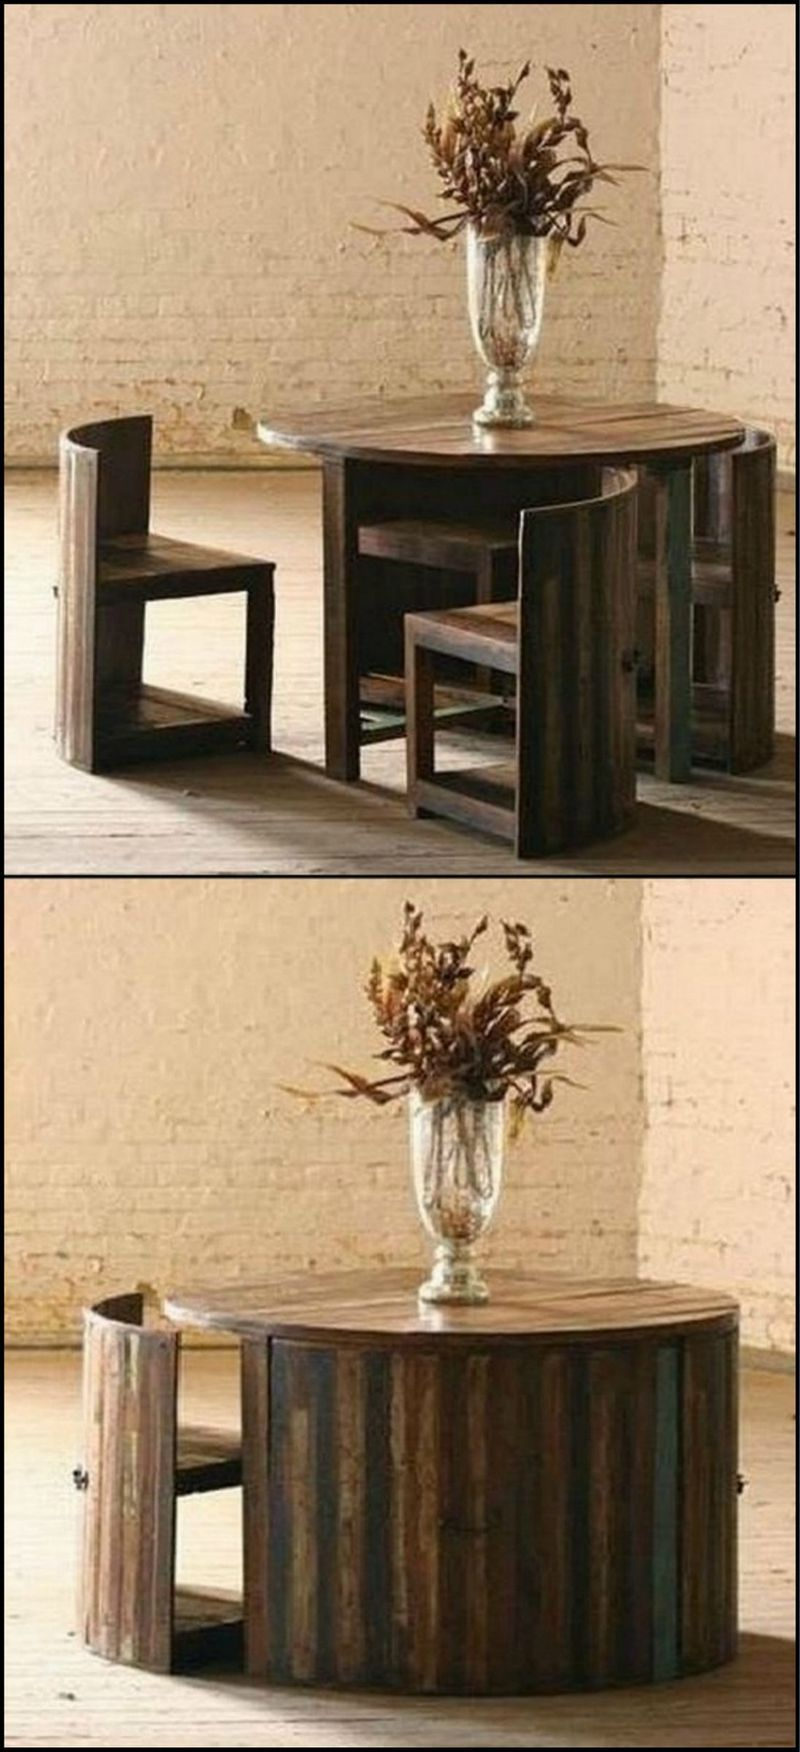 space saver furniture. Here\u0027s A Great Space Saving Table Made From Reclaimed Teak. The Chairs Are Fitted With Forged Iron Handle On Back So You Can Easily Pull Them Out. Saver Furniture E